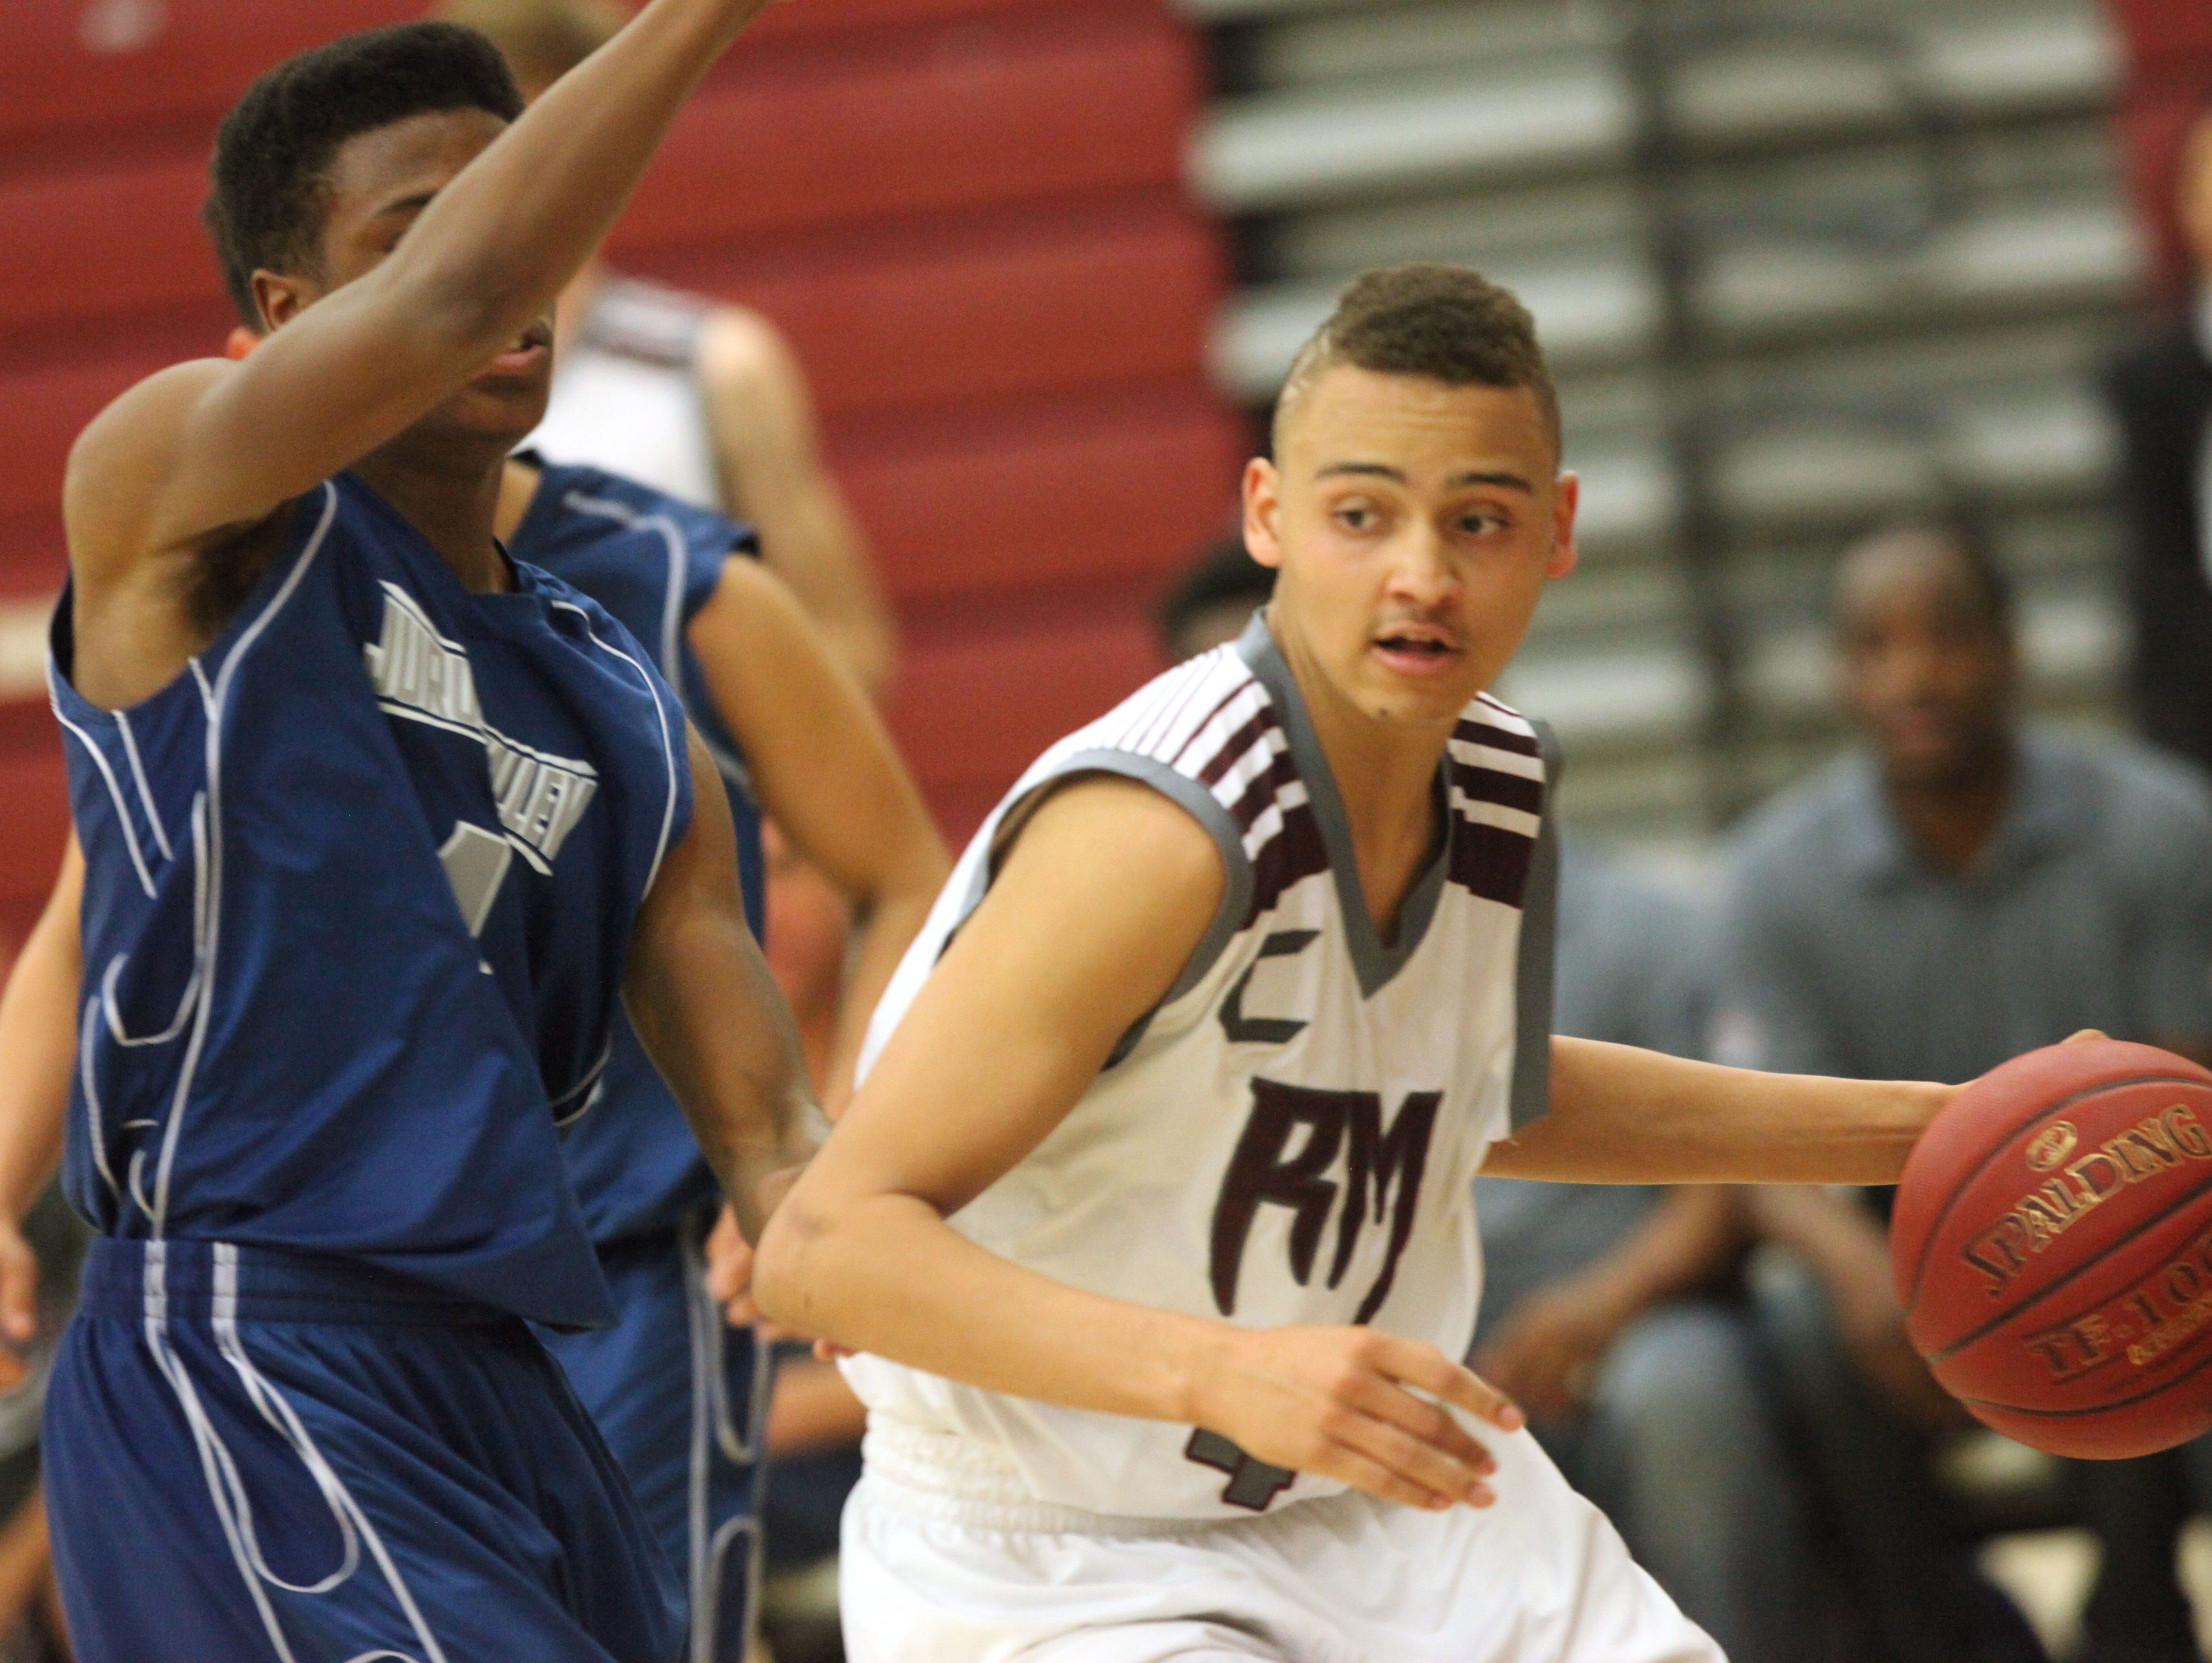 Rancho Mirage High School's Charles Neal scored 32 point to lead his team for a win in CIF against Jurupa Valley.